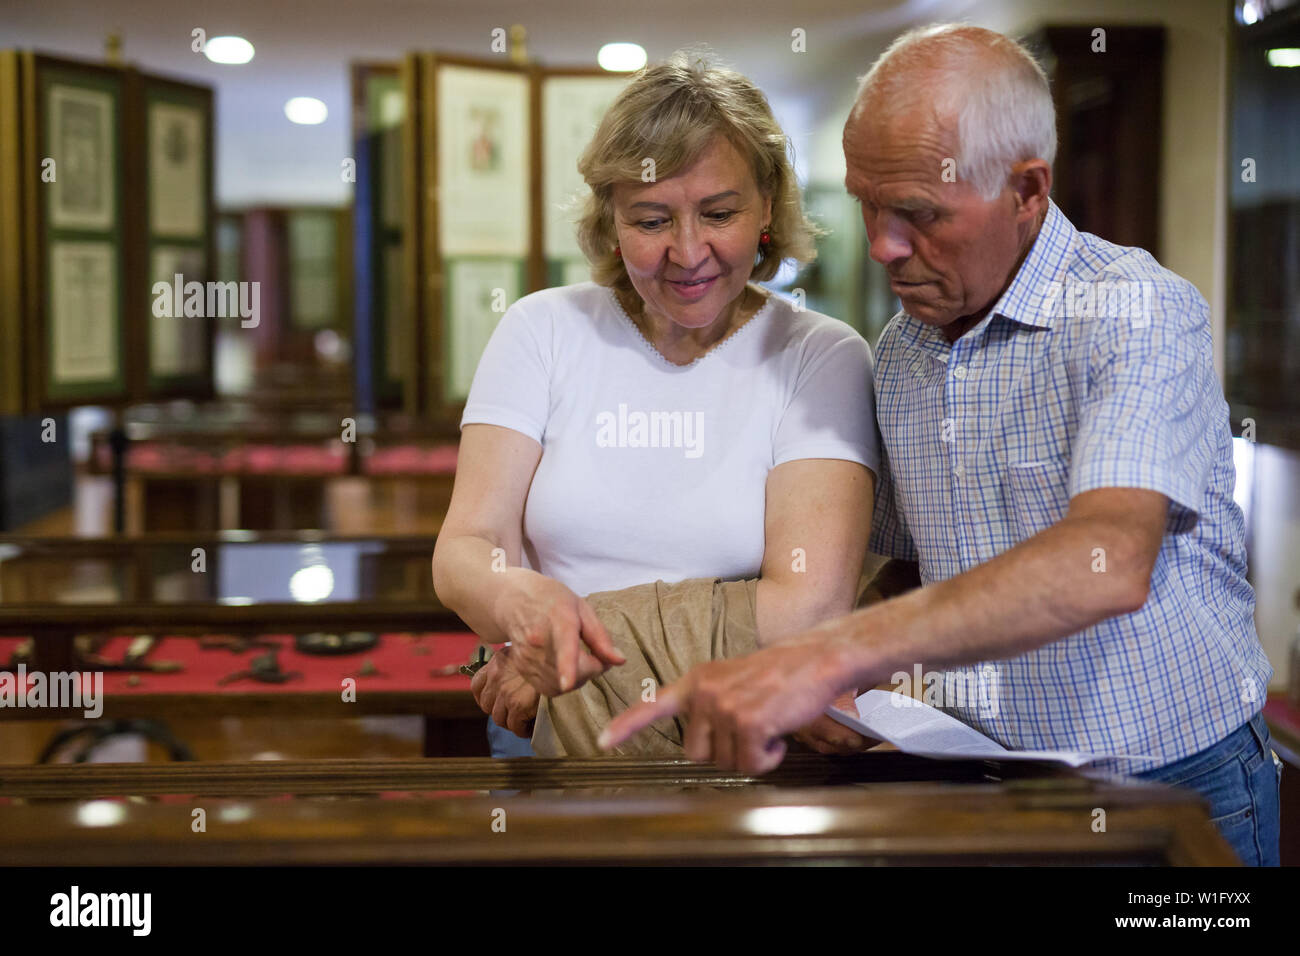 Senior couple looking at stands with exhibits in historical museum hall - Stock Image